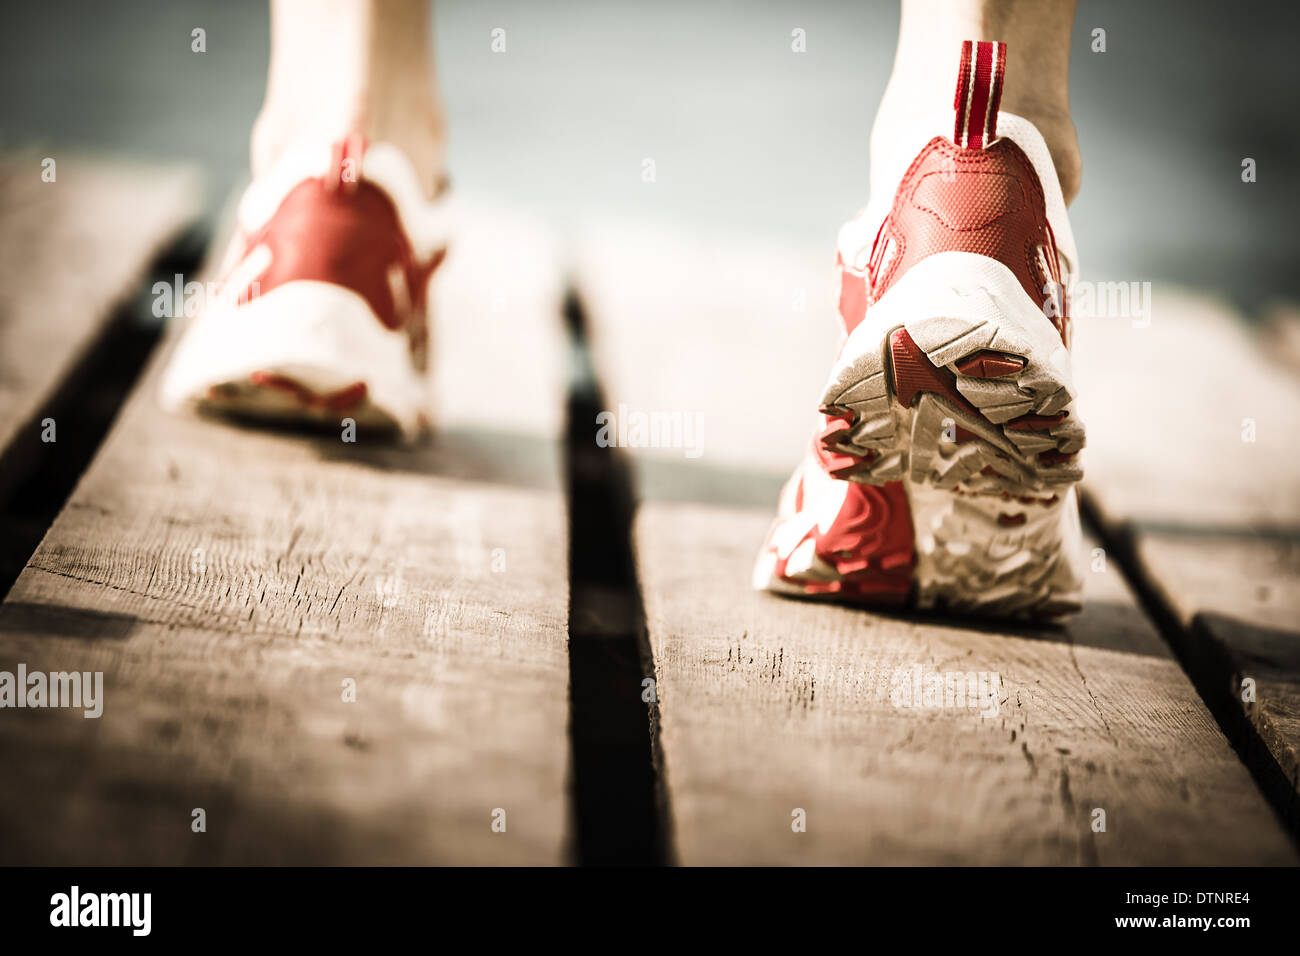 Feet of jogging person - Stock Image